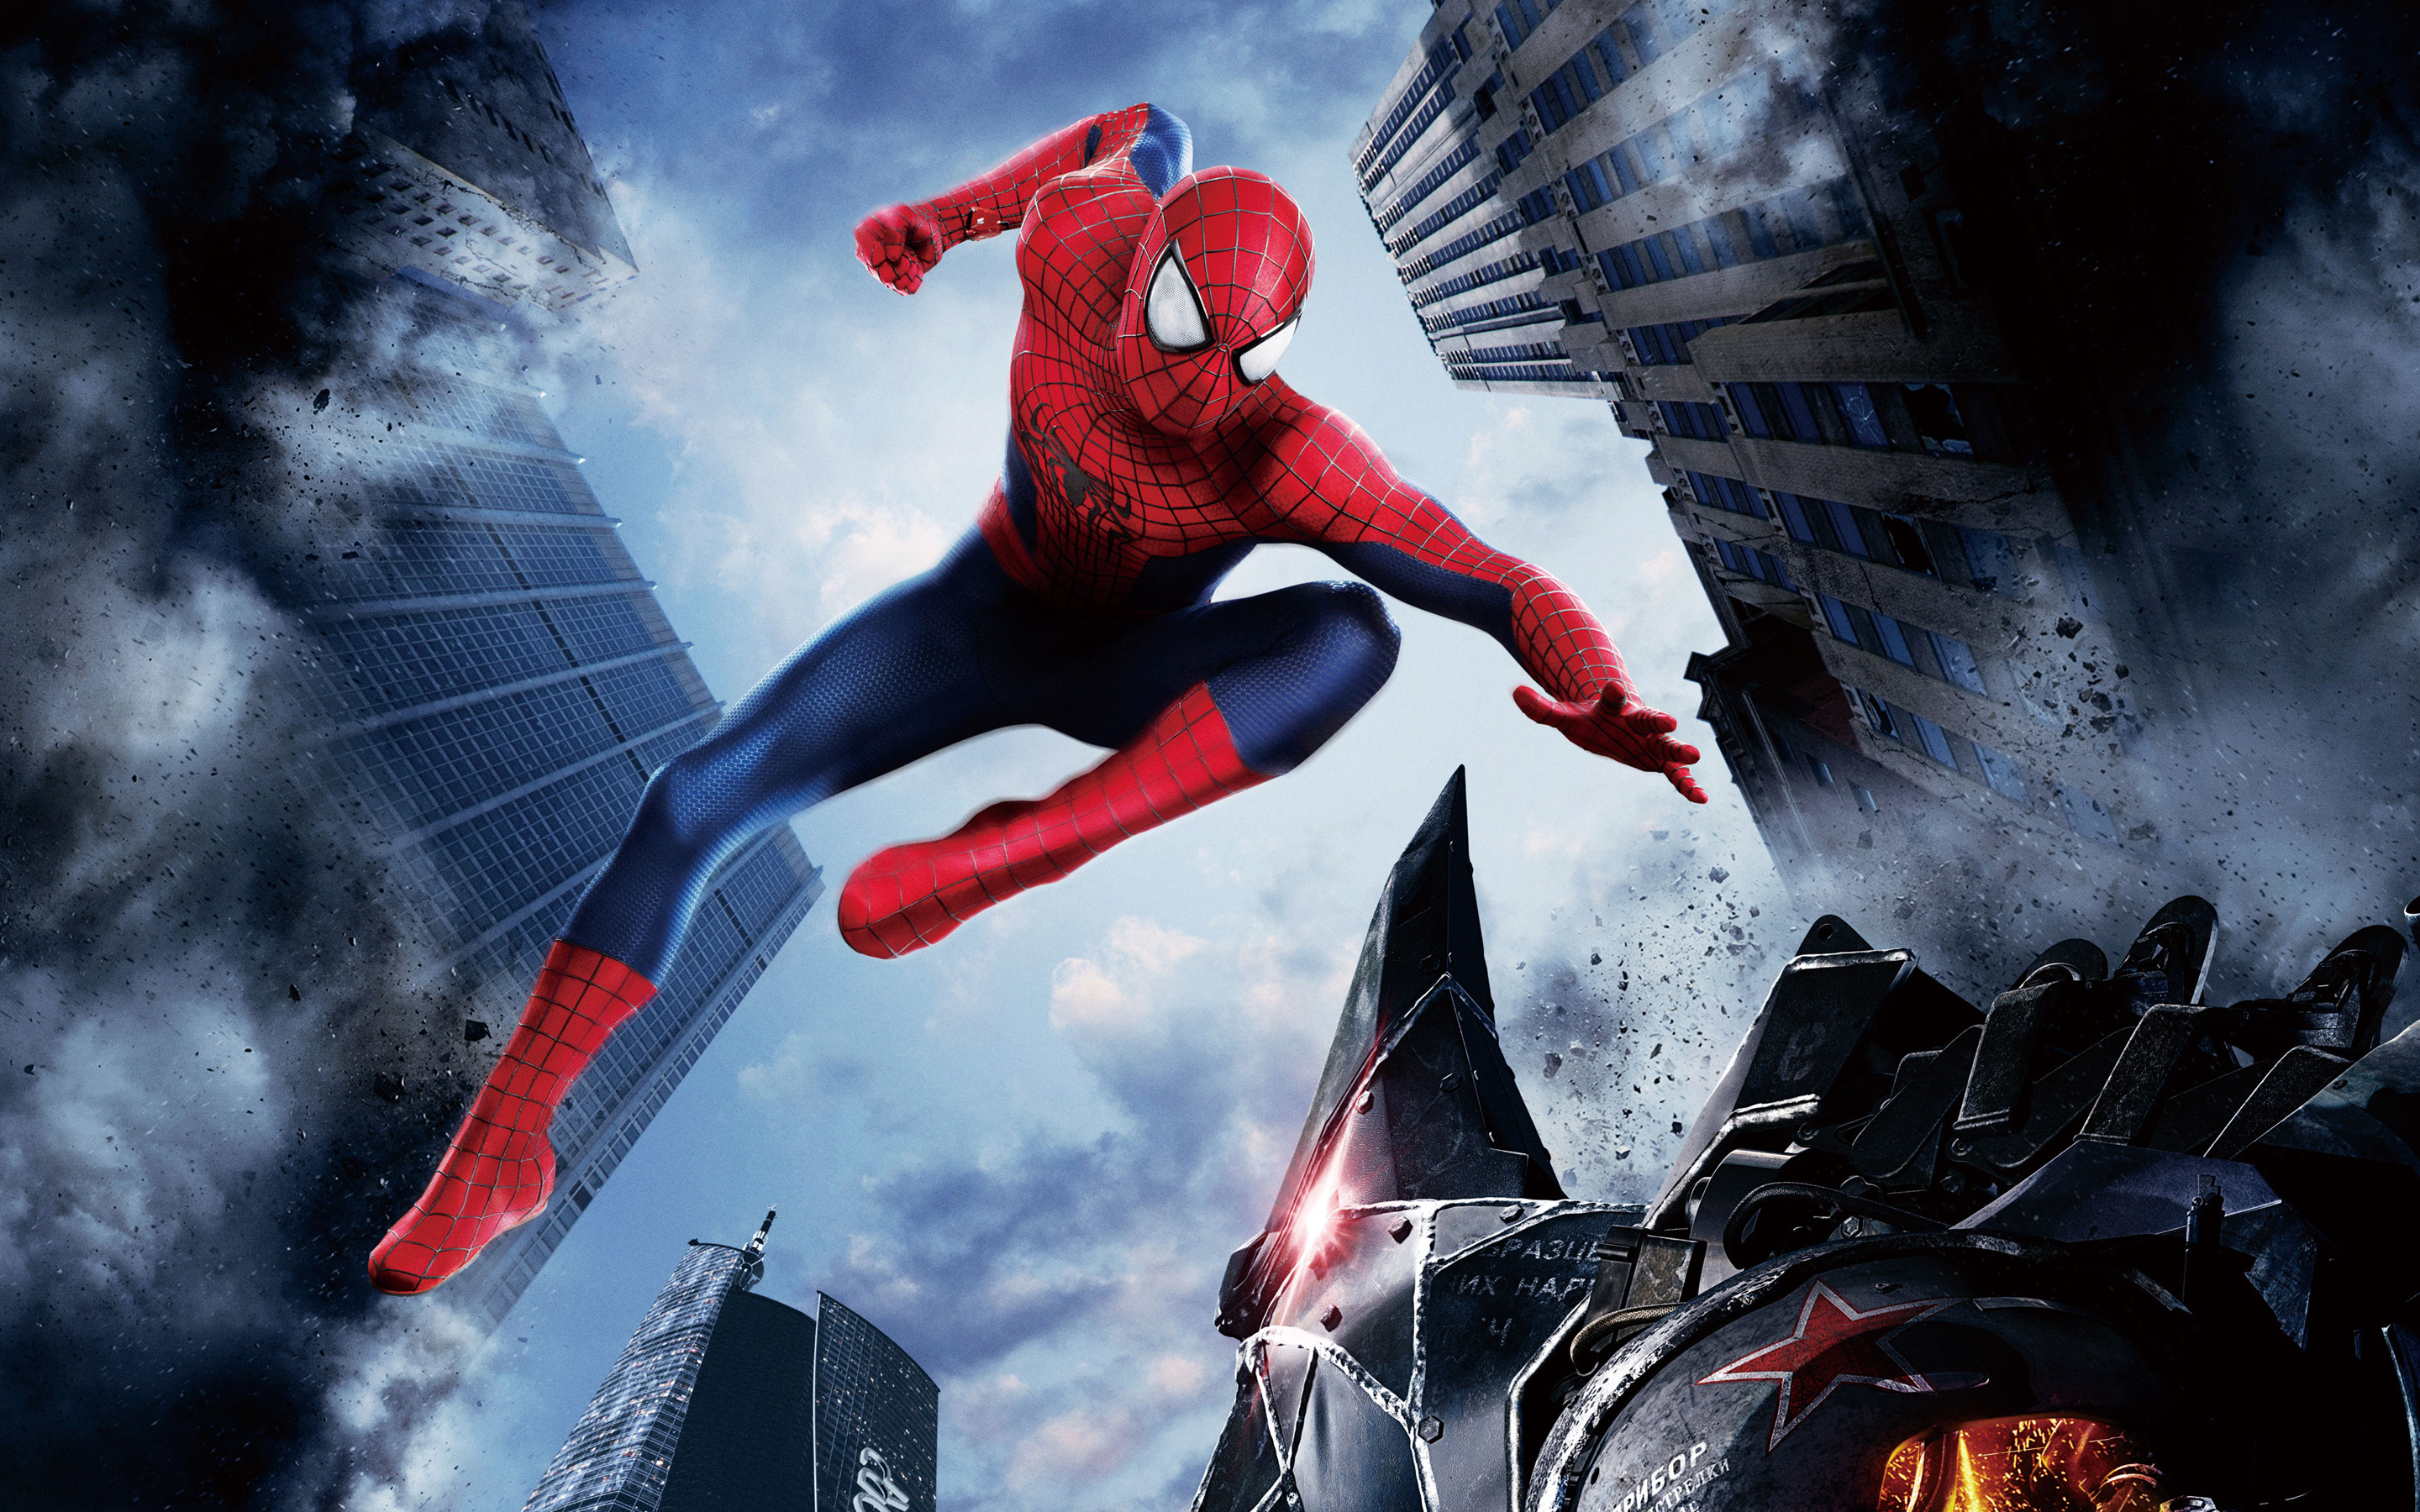 HD Wallpapers The Amazing Spider Man 2 2014 Movie